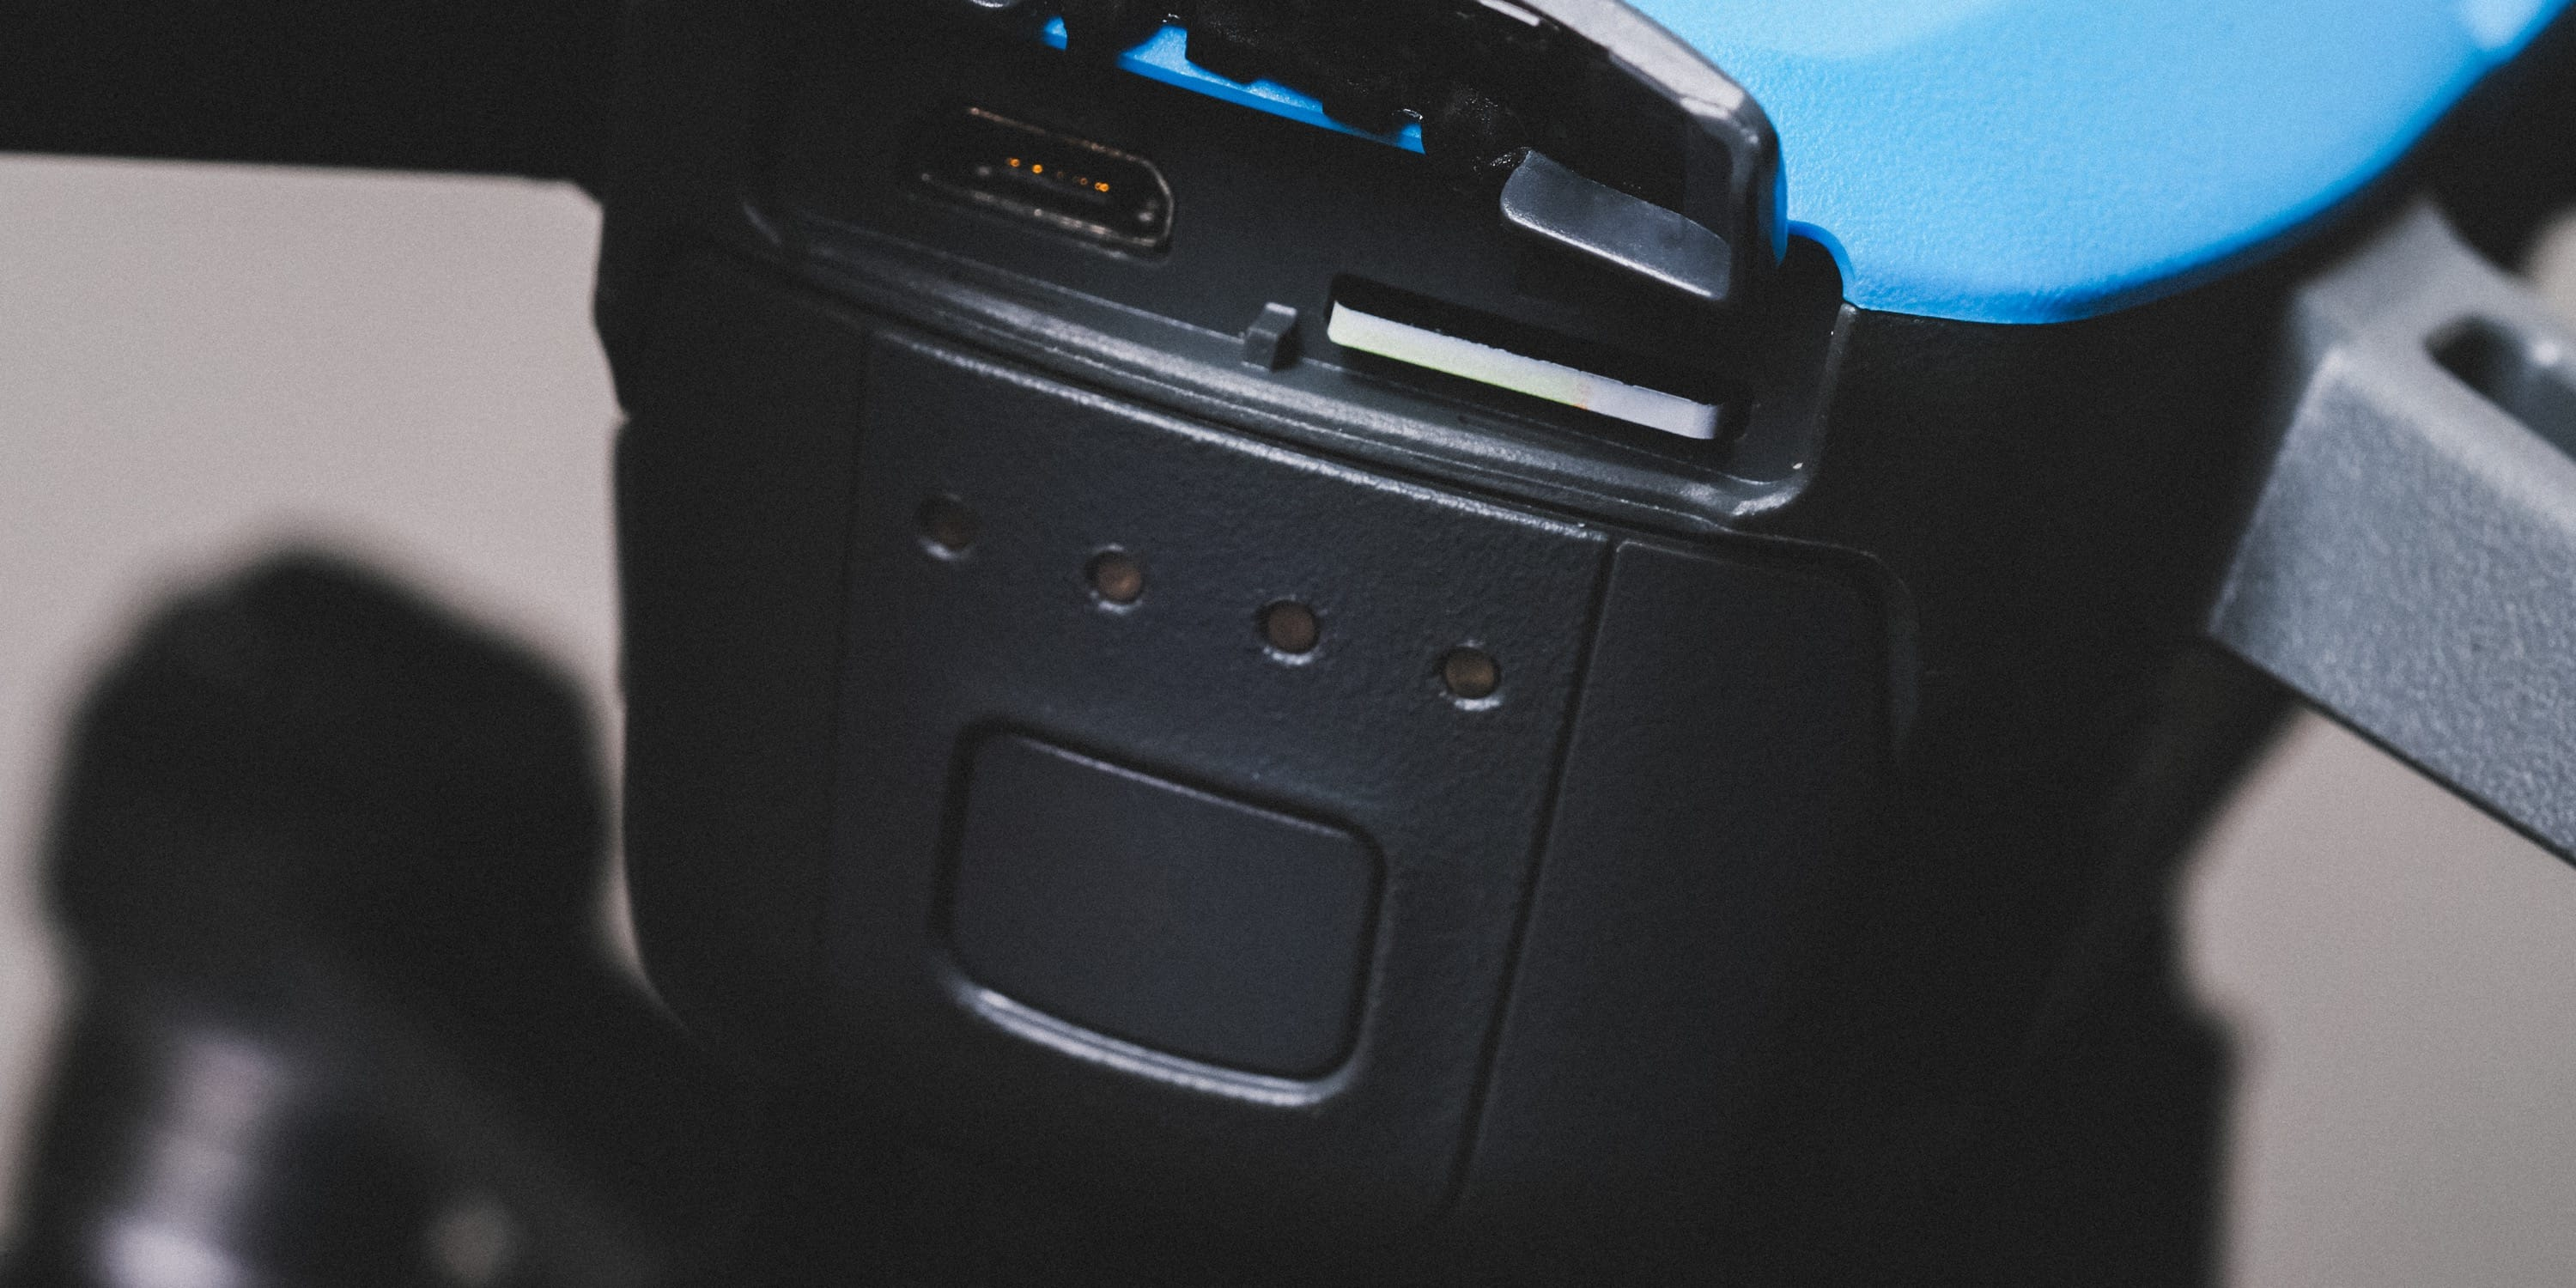 DJI Spark Memory Card Slot In The Back